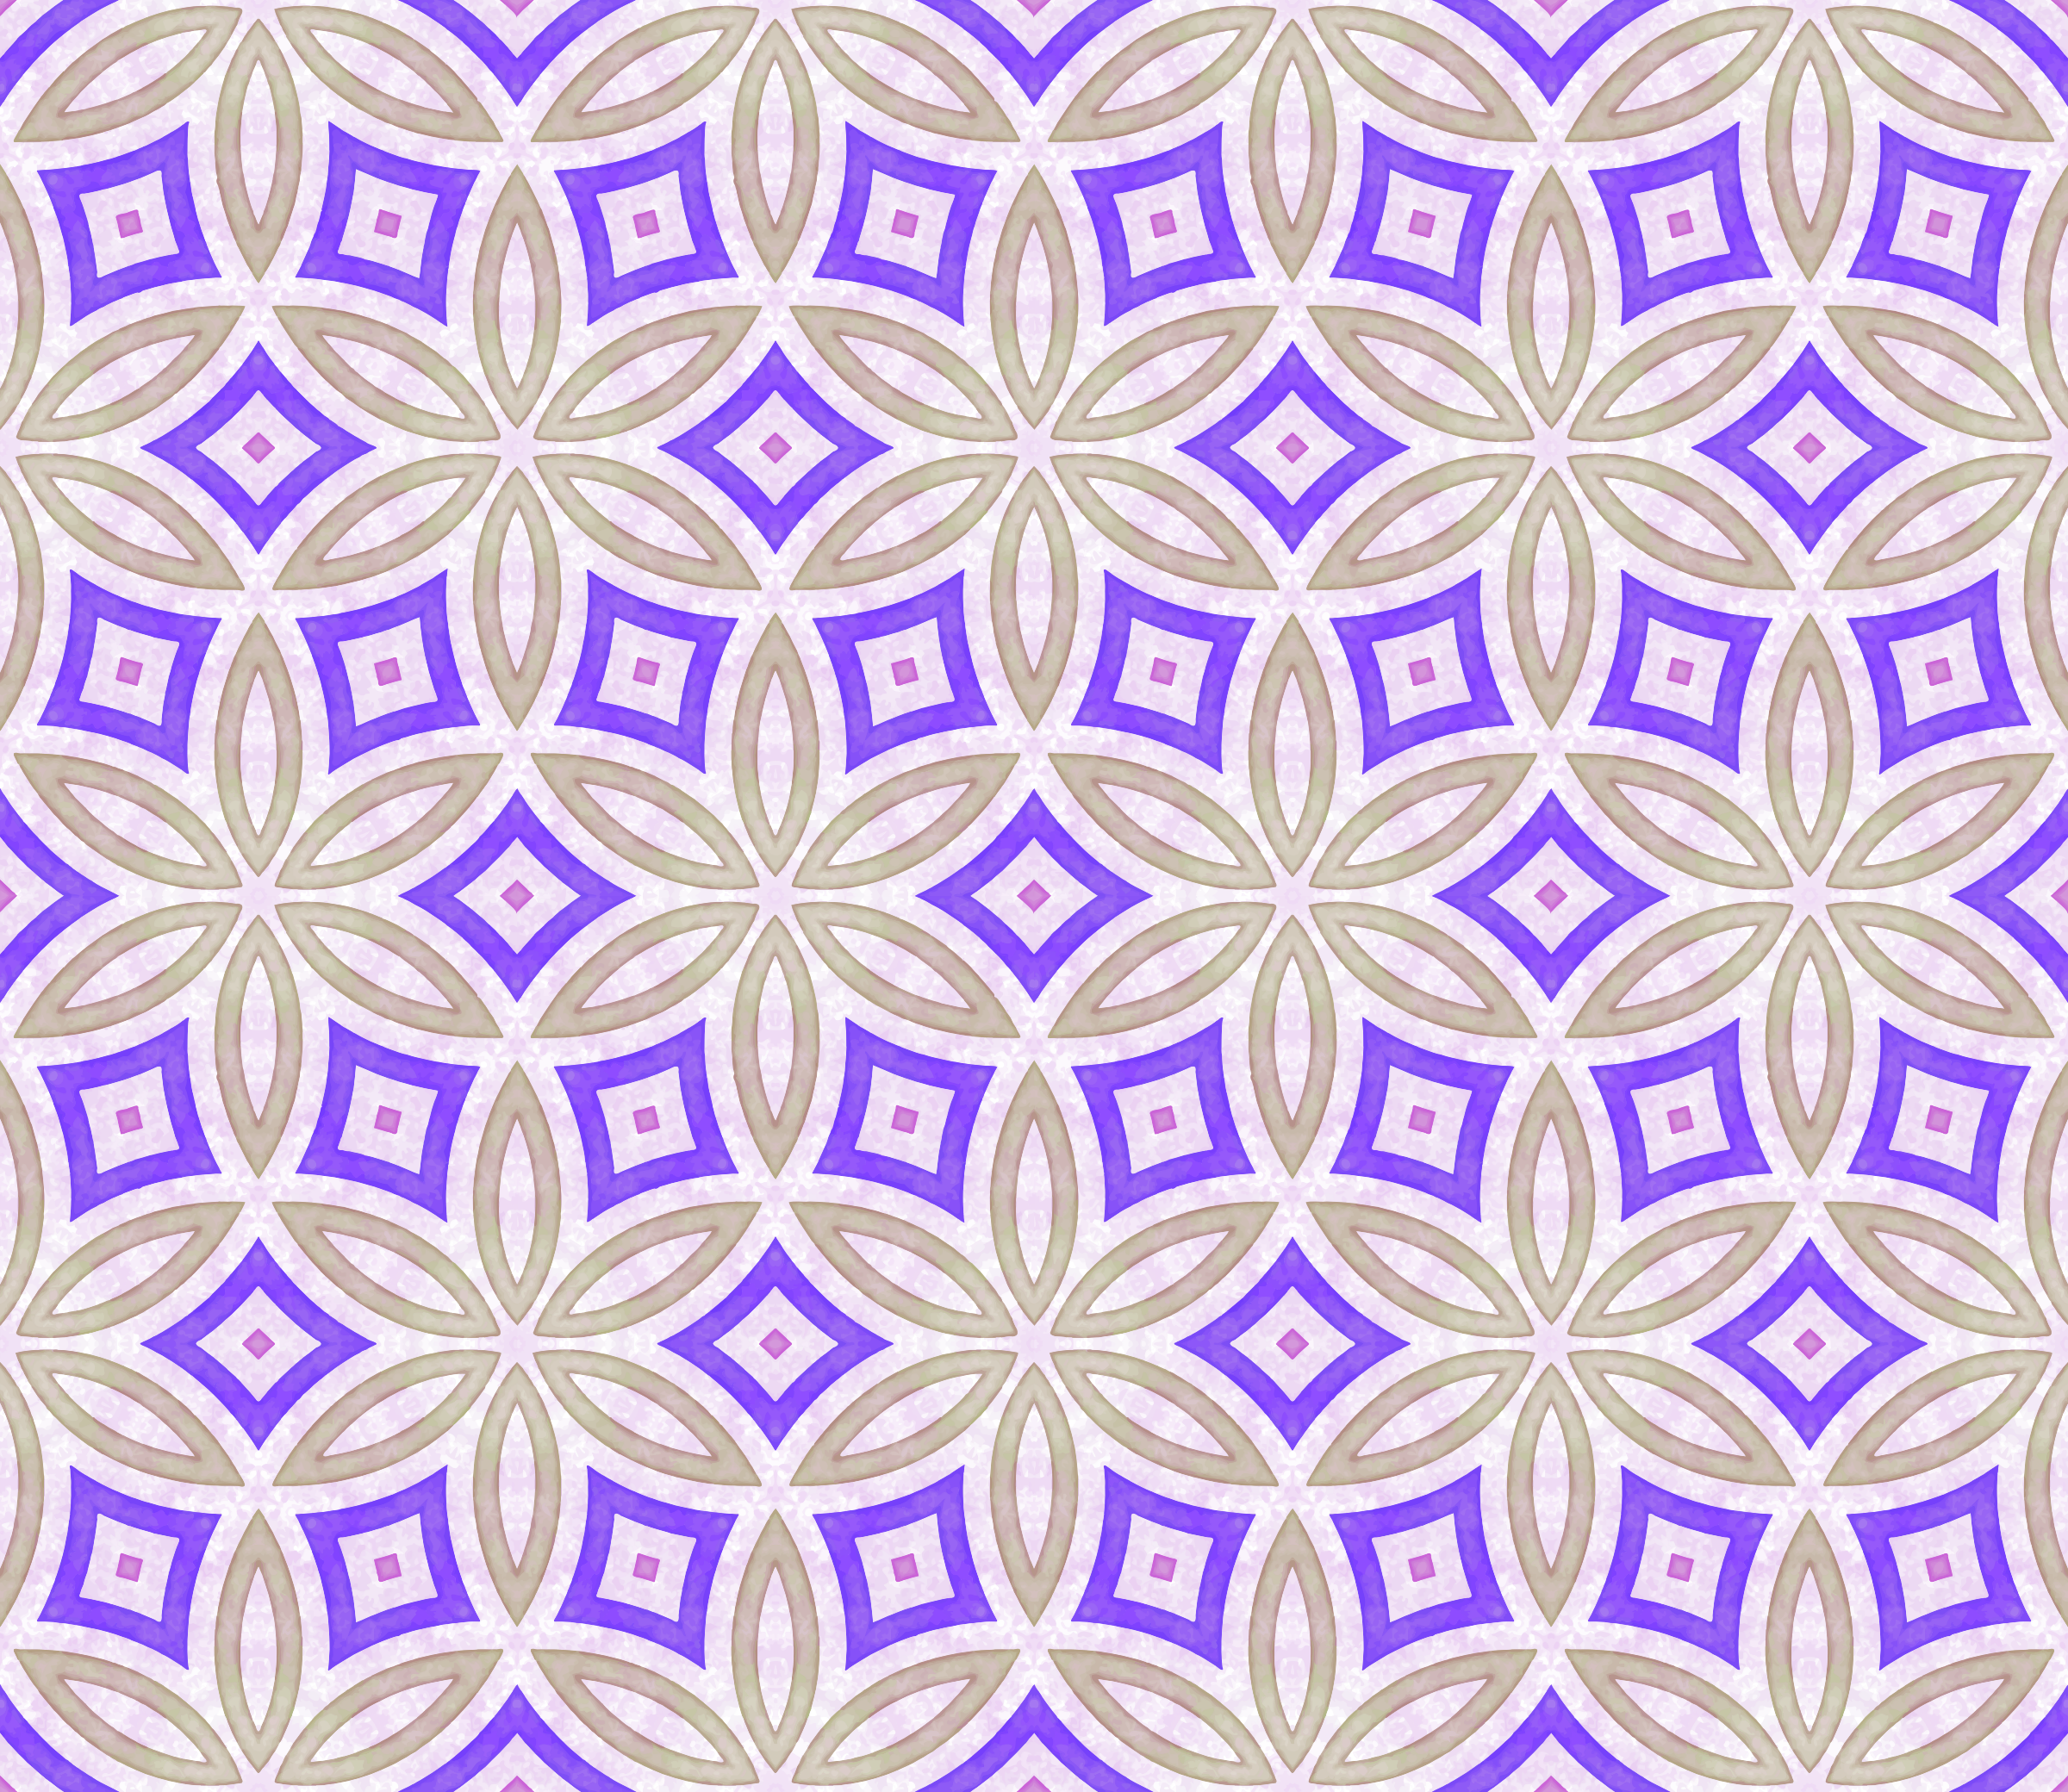 Background pattern 316 (colour 3) by Firkin